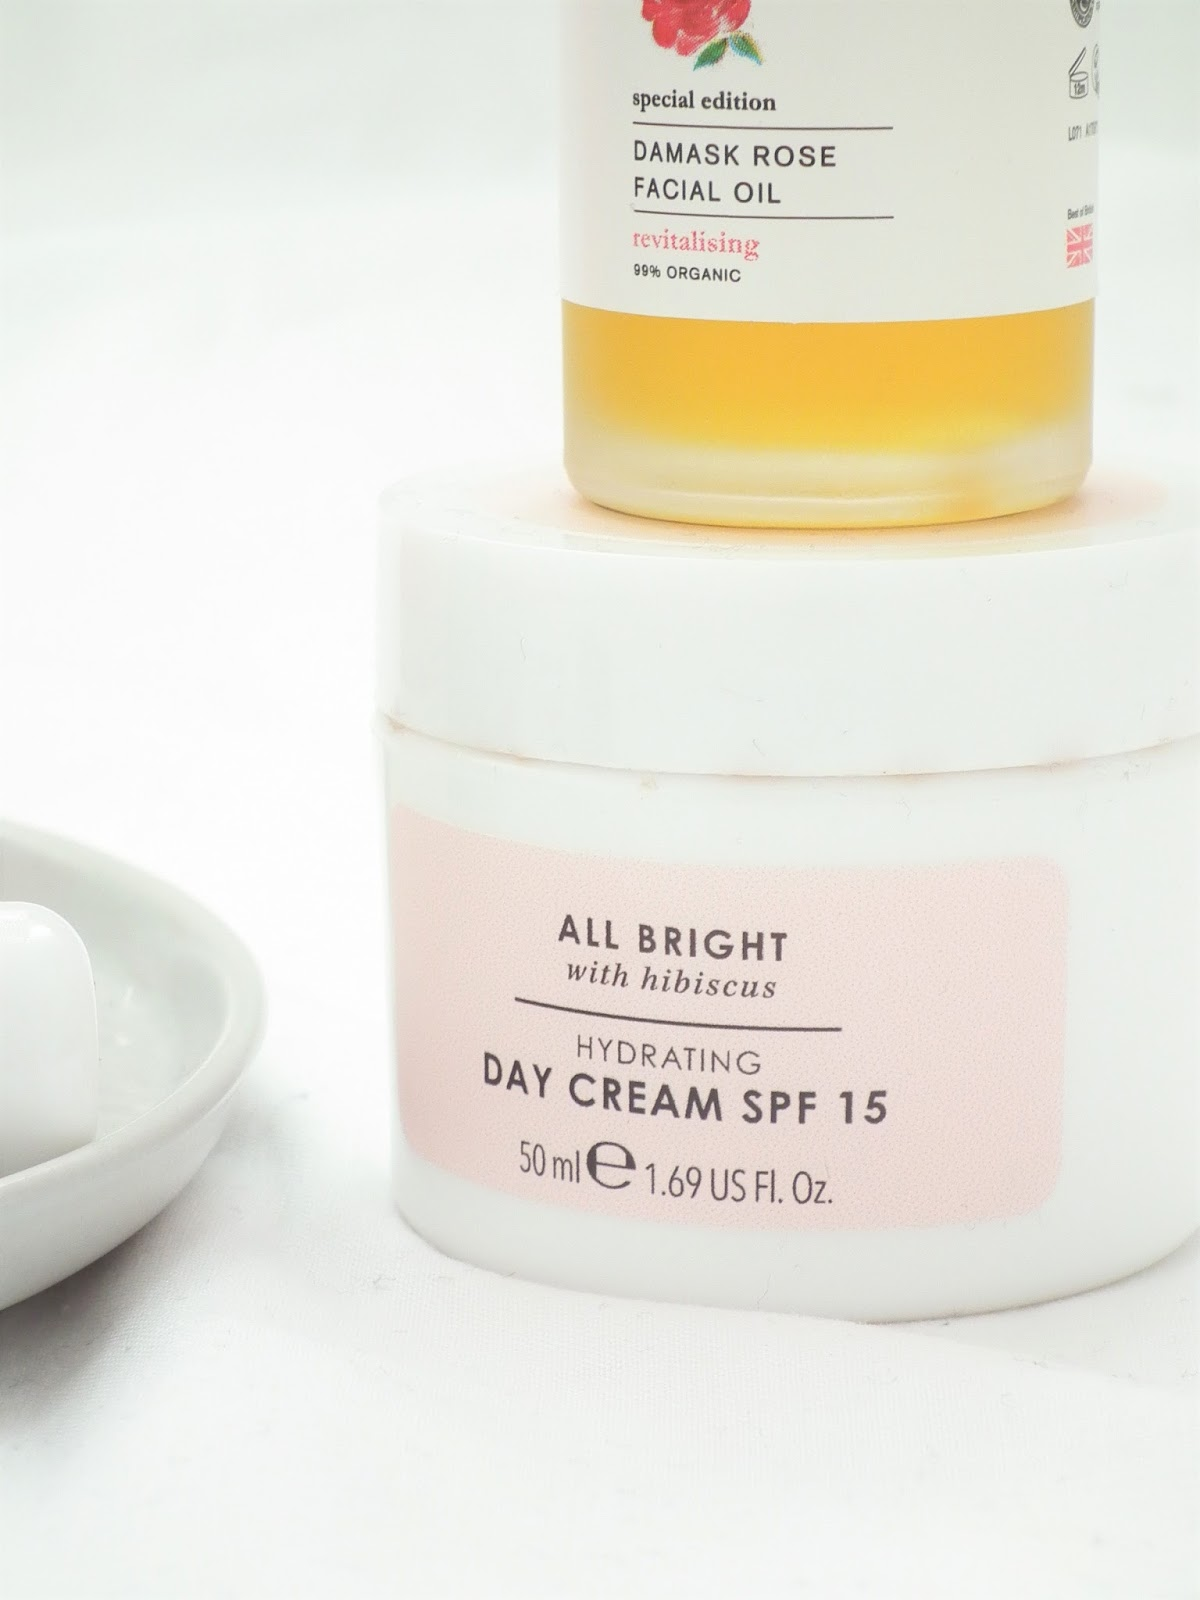 Winter Skincare For Dry/Dehydrated Skin Botanics Day Cream Facial Oil